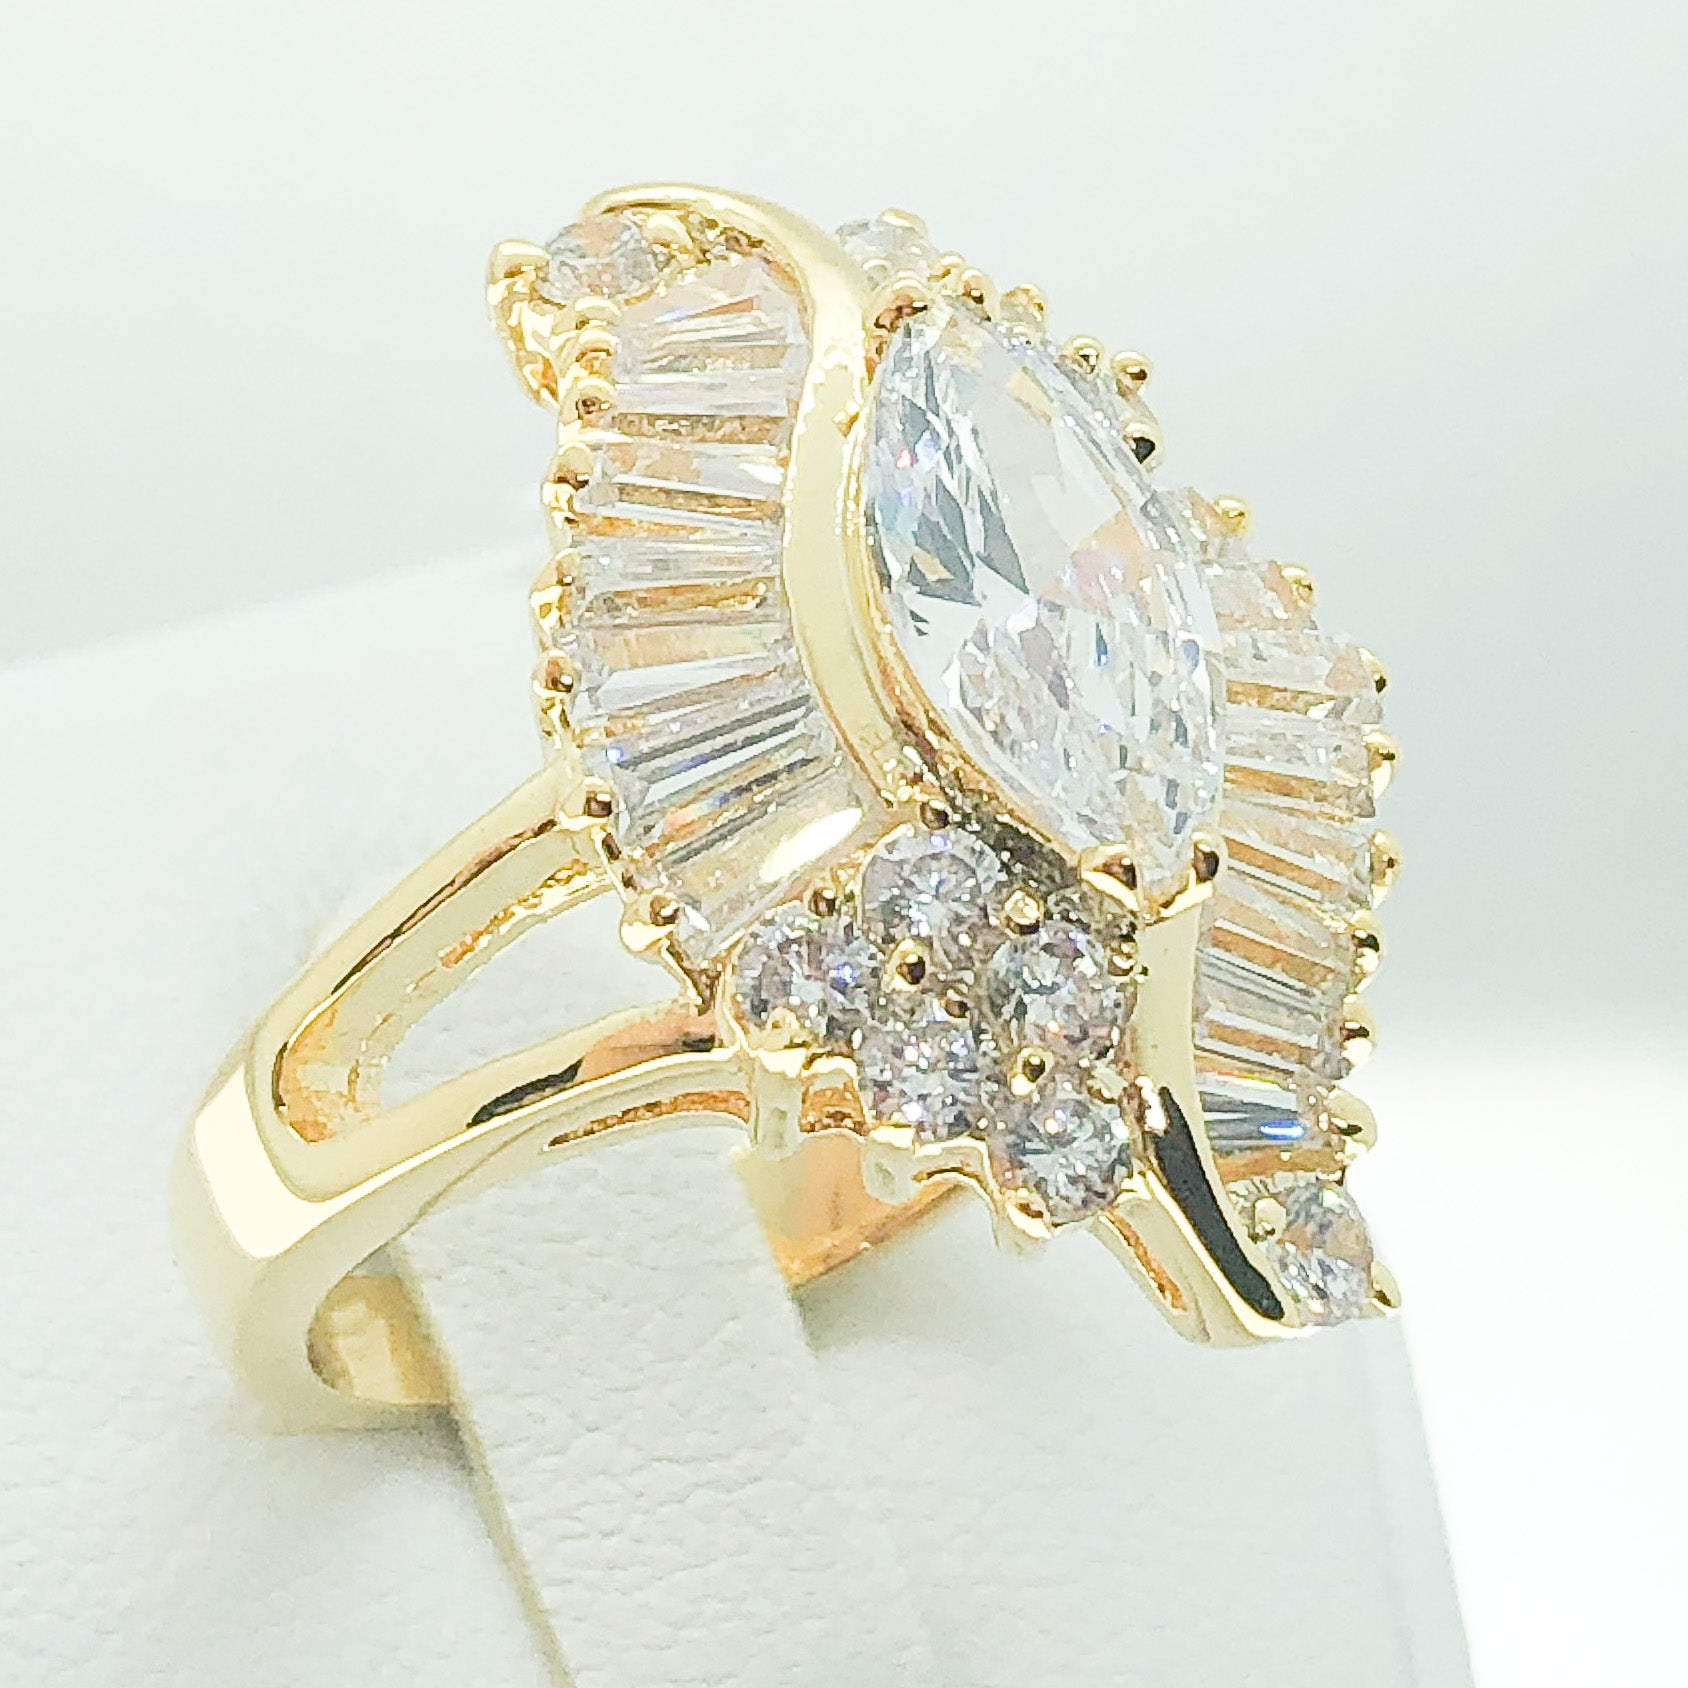 ID:R0578 Women Vintage Jewelry 18K Yellow Gold GF Eye-Catching Engagement Wedding Solitaire Bridal Diamonique Ring With Accent